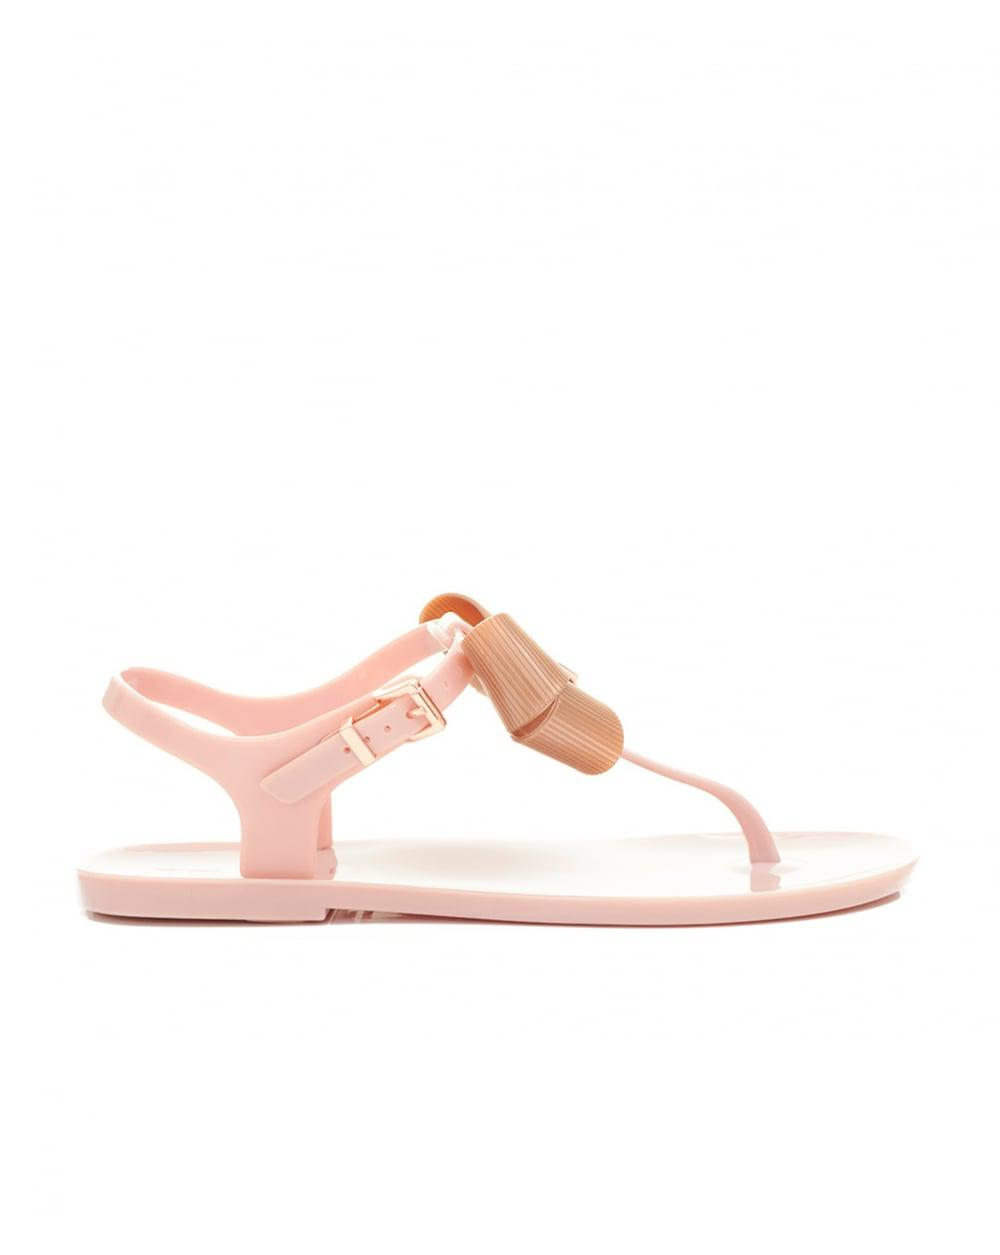 b4dad2dded882 Lyst - Ted Baker Bow Detail Jelly Sandals in Pink